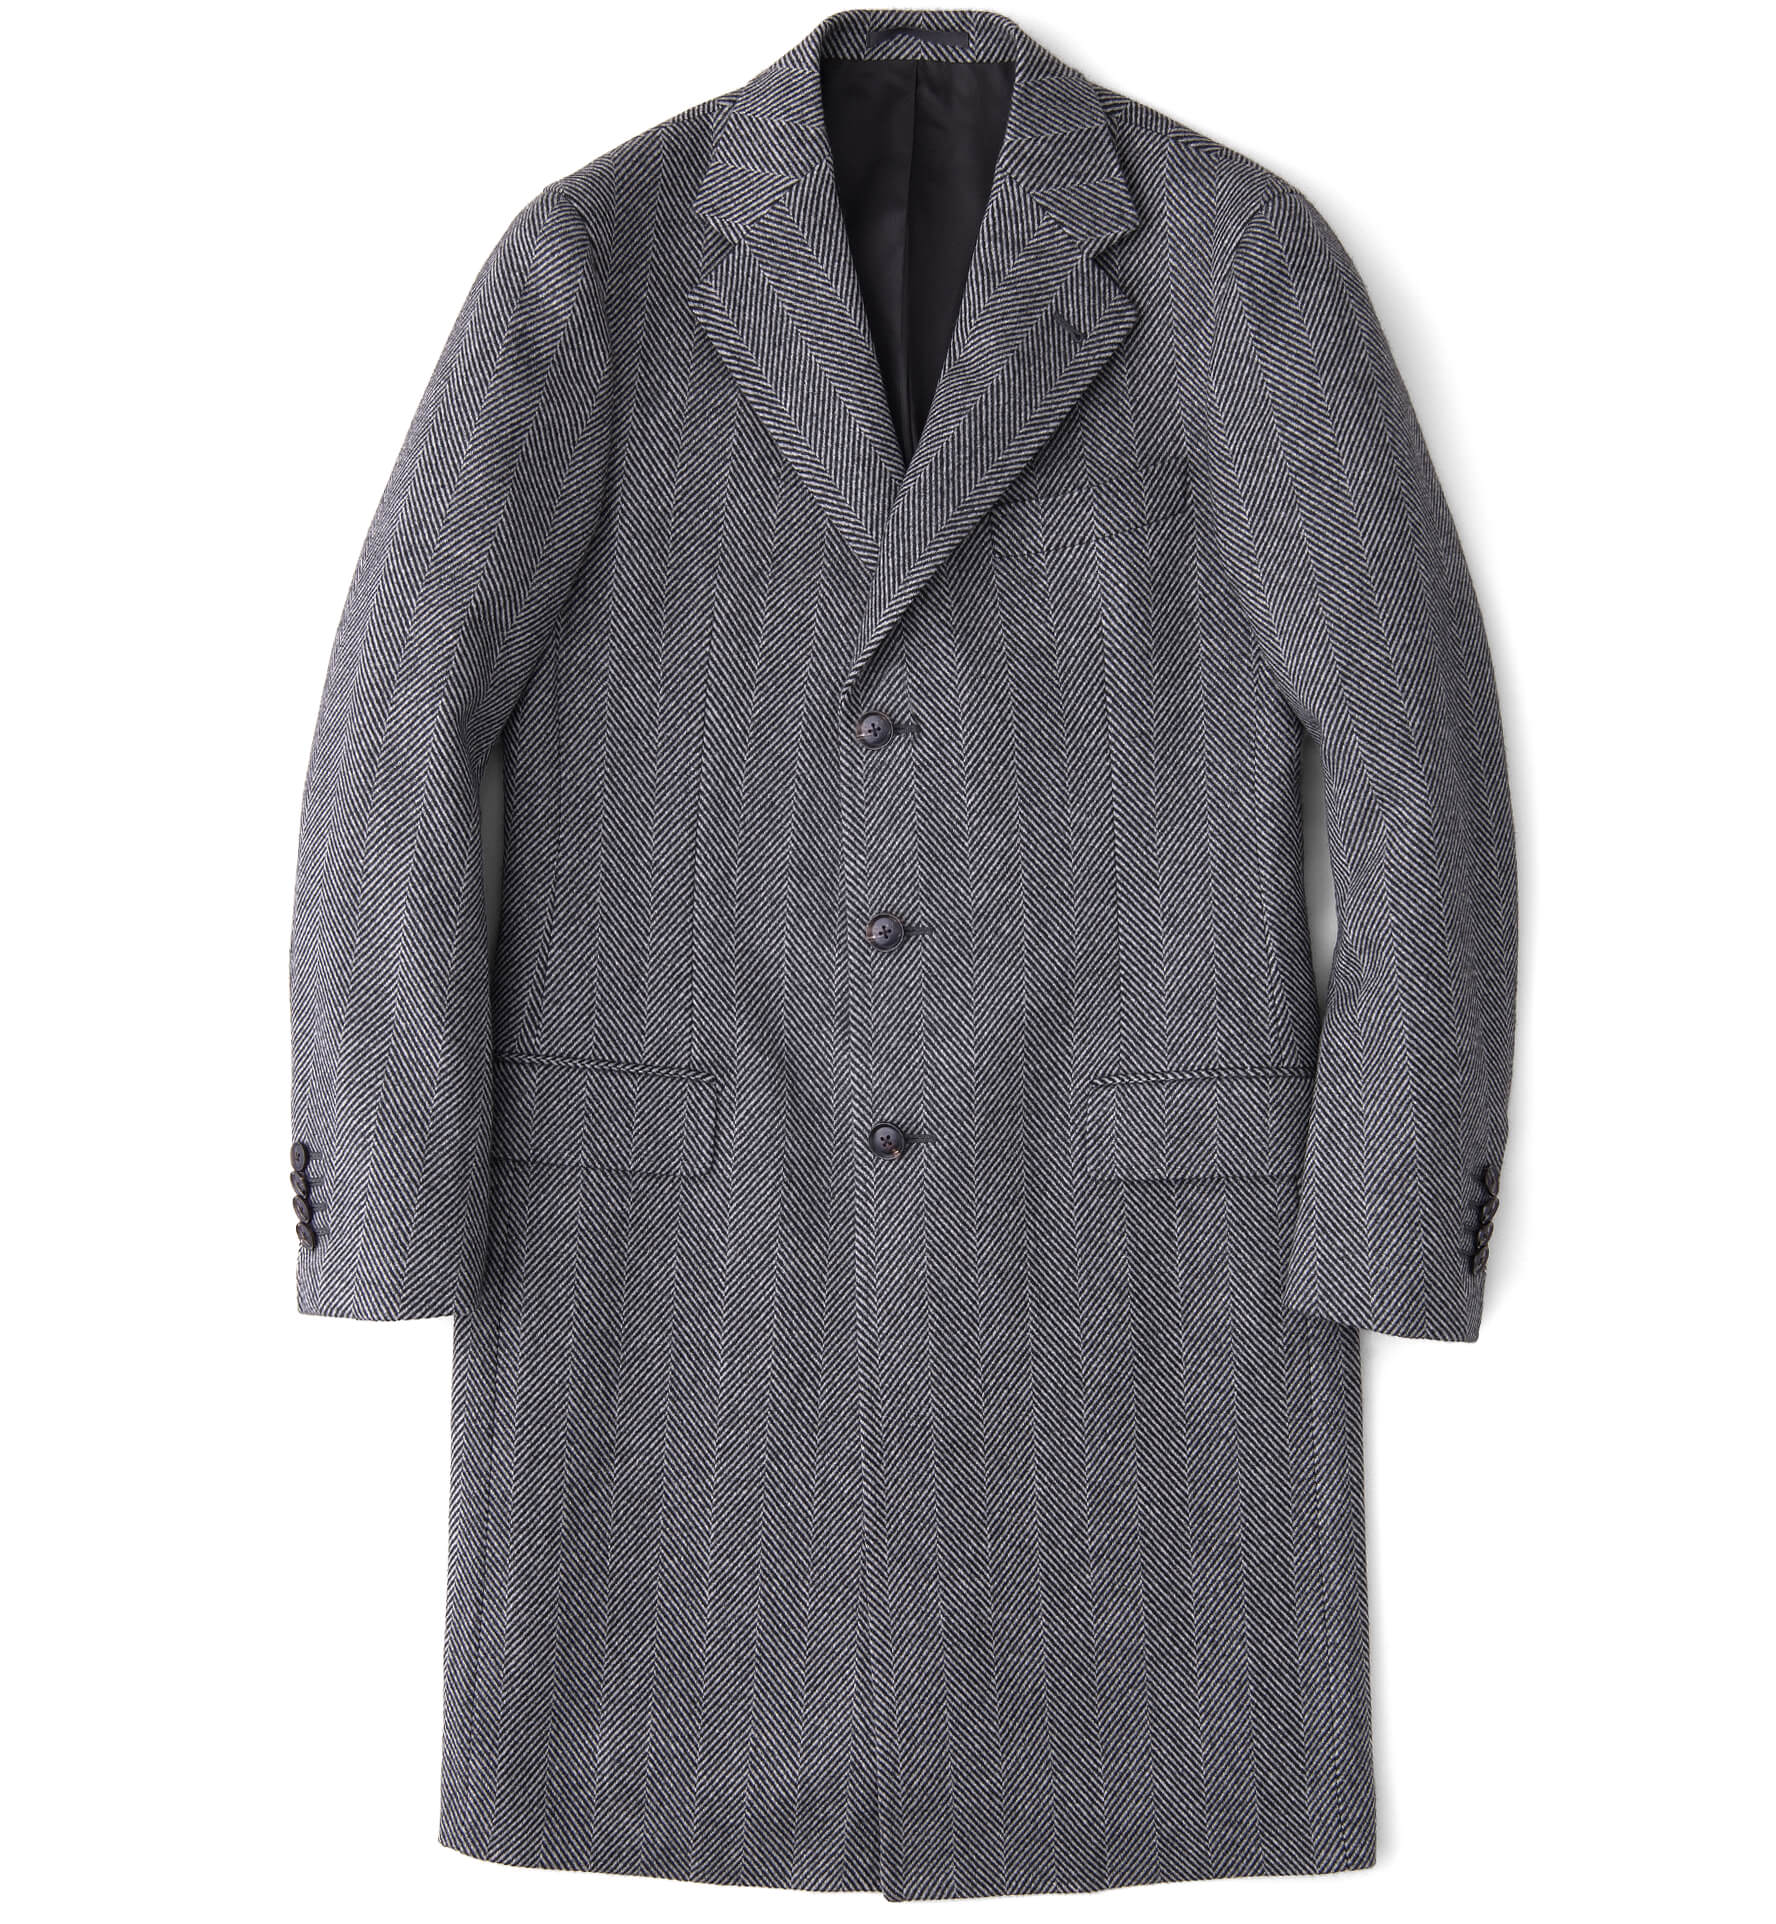 Zoom Image of Bleecker Grey Herringbone Wool and Cashmere Coat